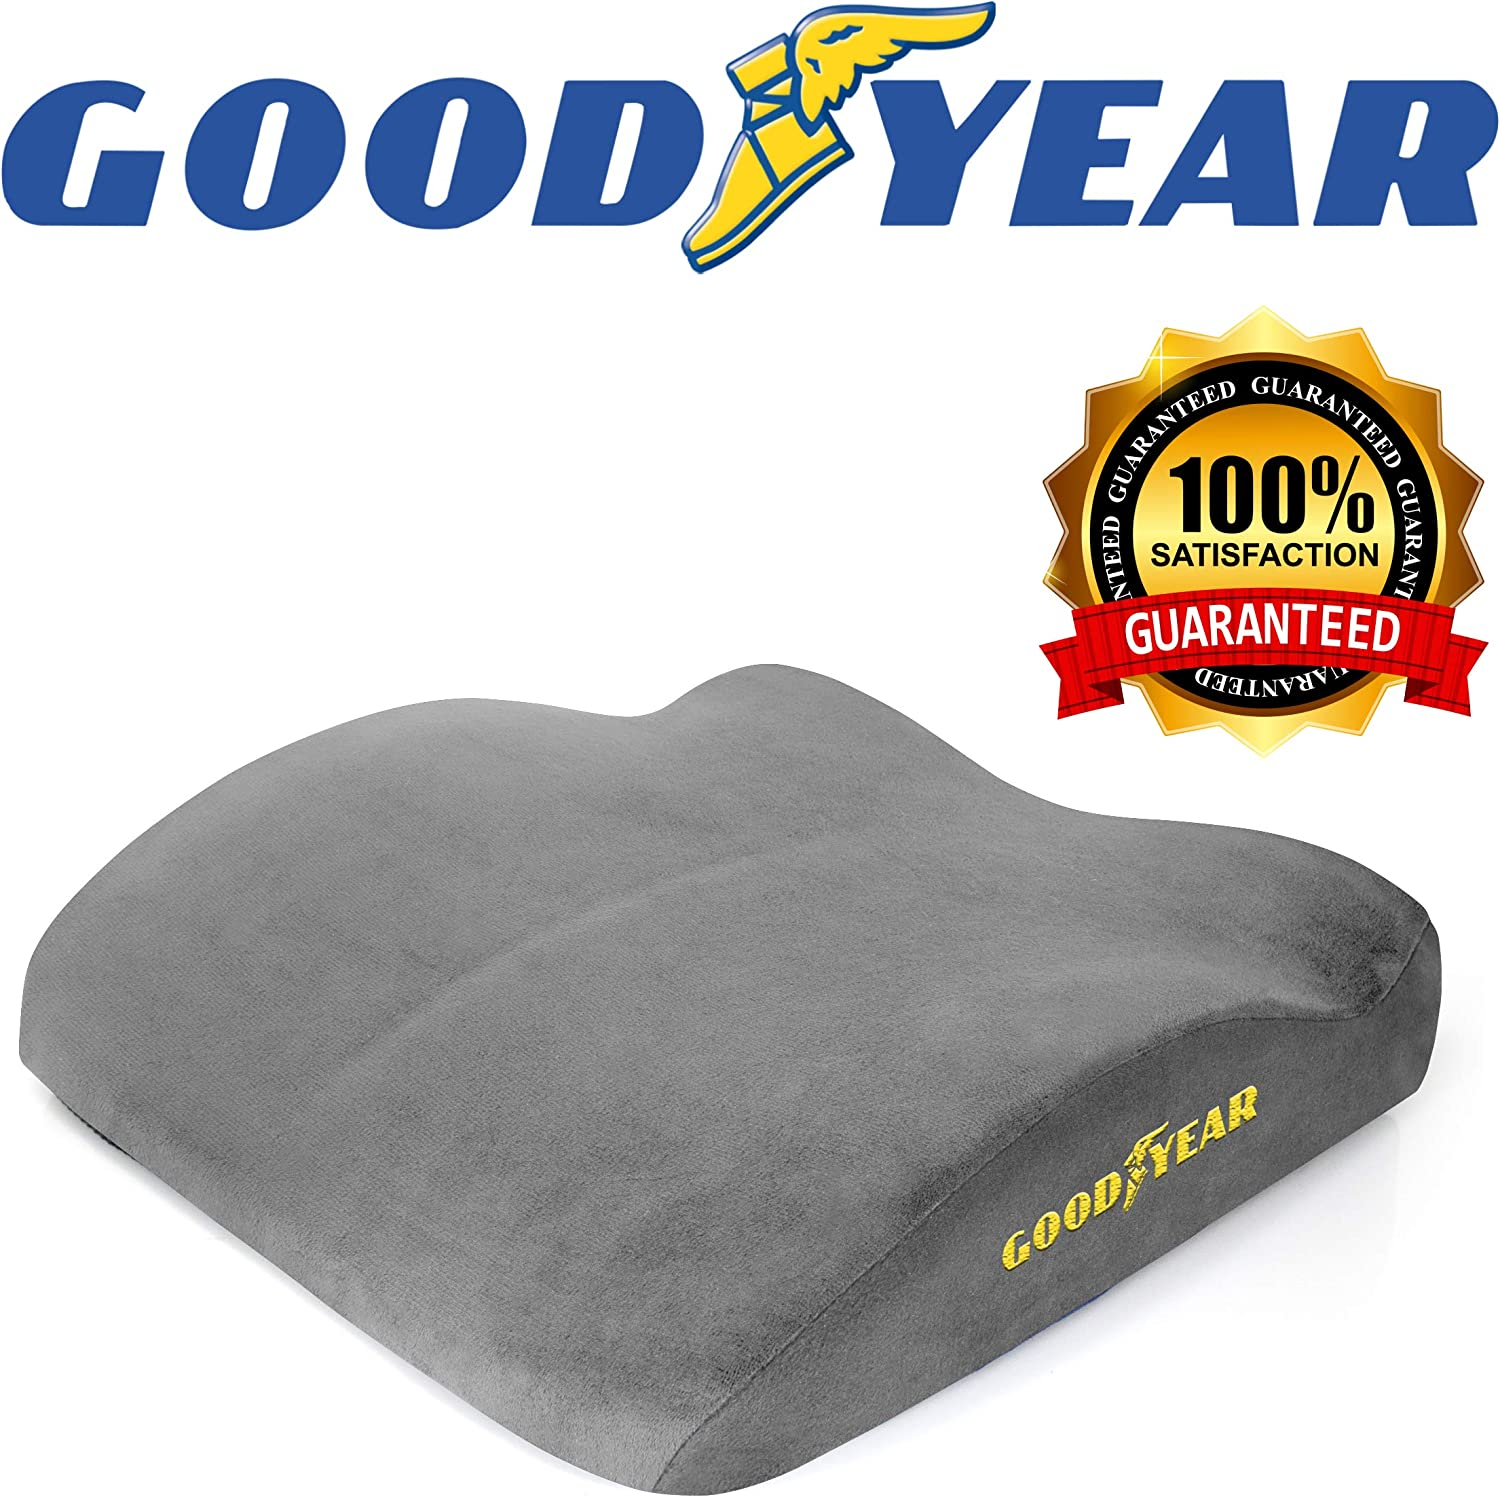 Goodyear GY1012 - Seat Cushion for Office Chair or Car / SUV - 100% Pure Memory Foam - Soft Plush Cover - Fits Most Seats - Non-Slip Bottom - Designed for Maximum Comfort - Washable Cover